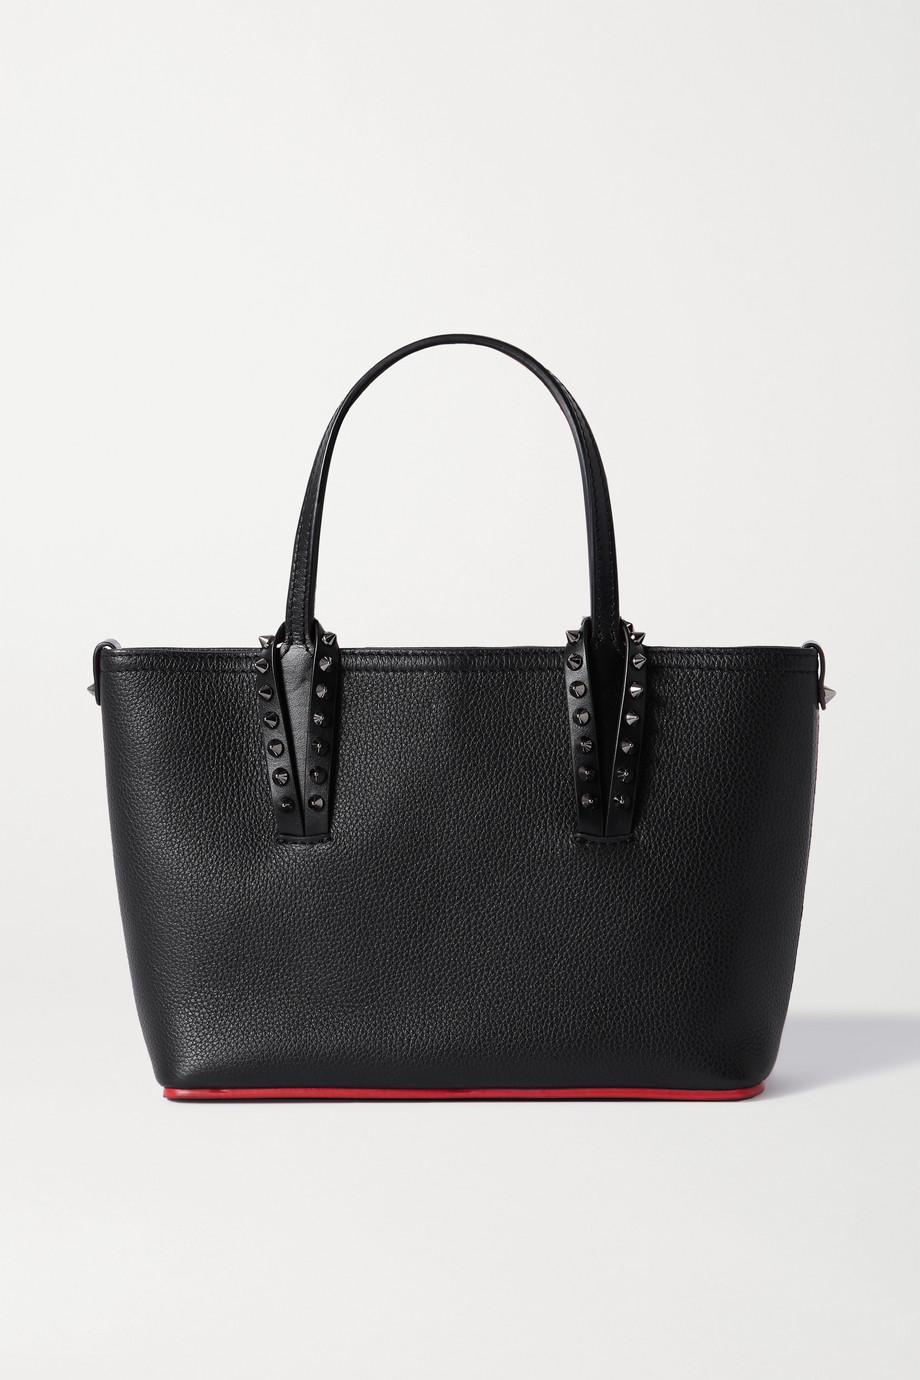 Christian Louboutin Cabata mini spiked textured-leather tote